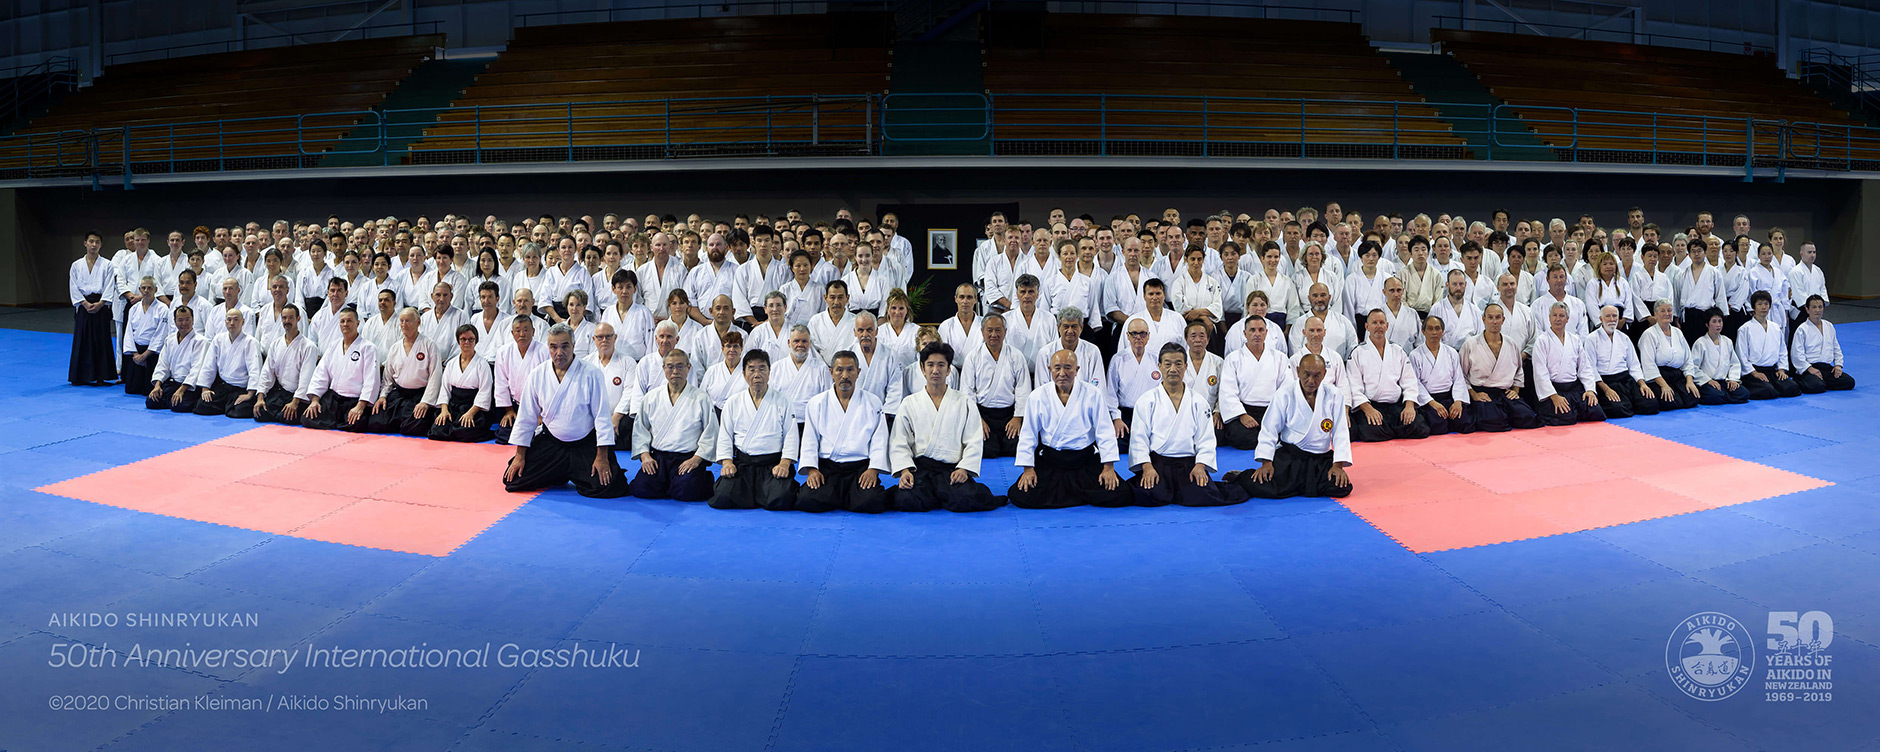 Aikido Shinryukan 50th International Gasshuku